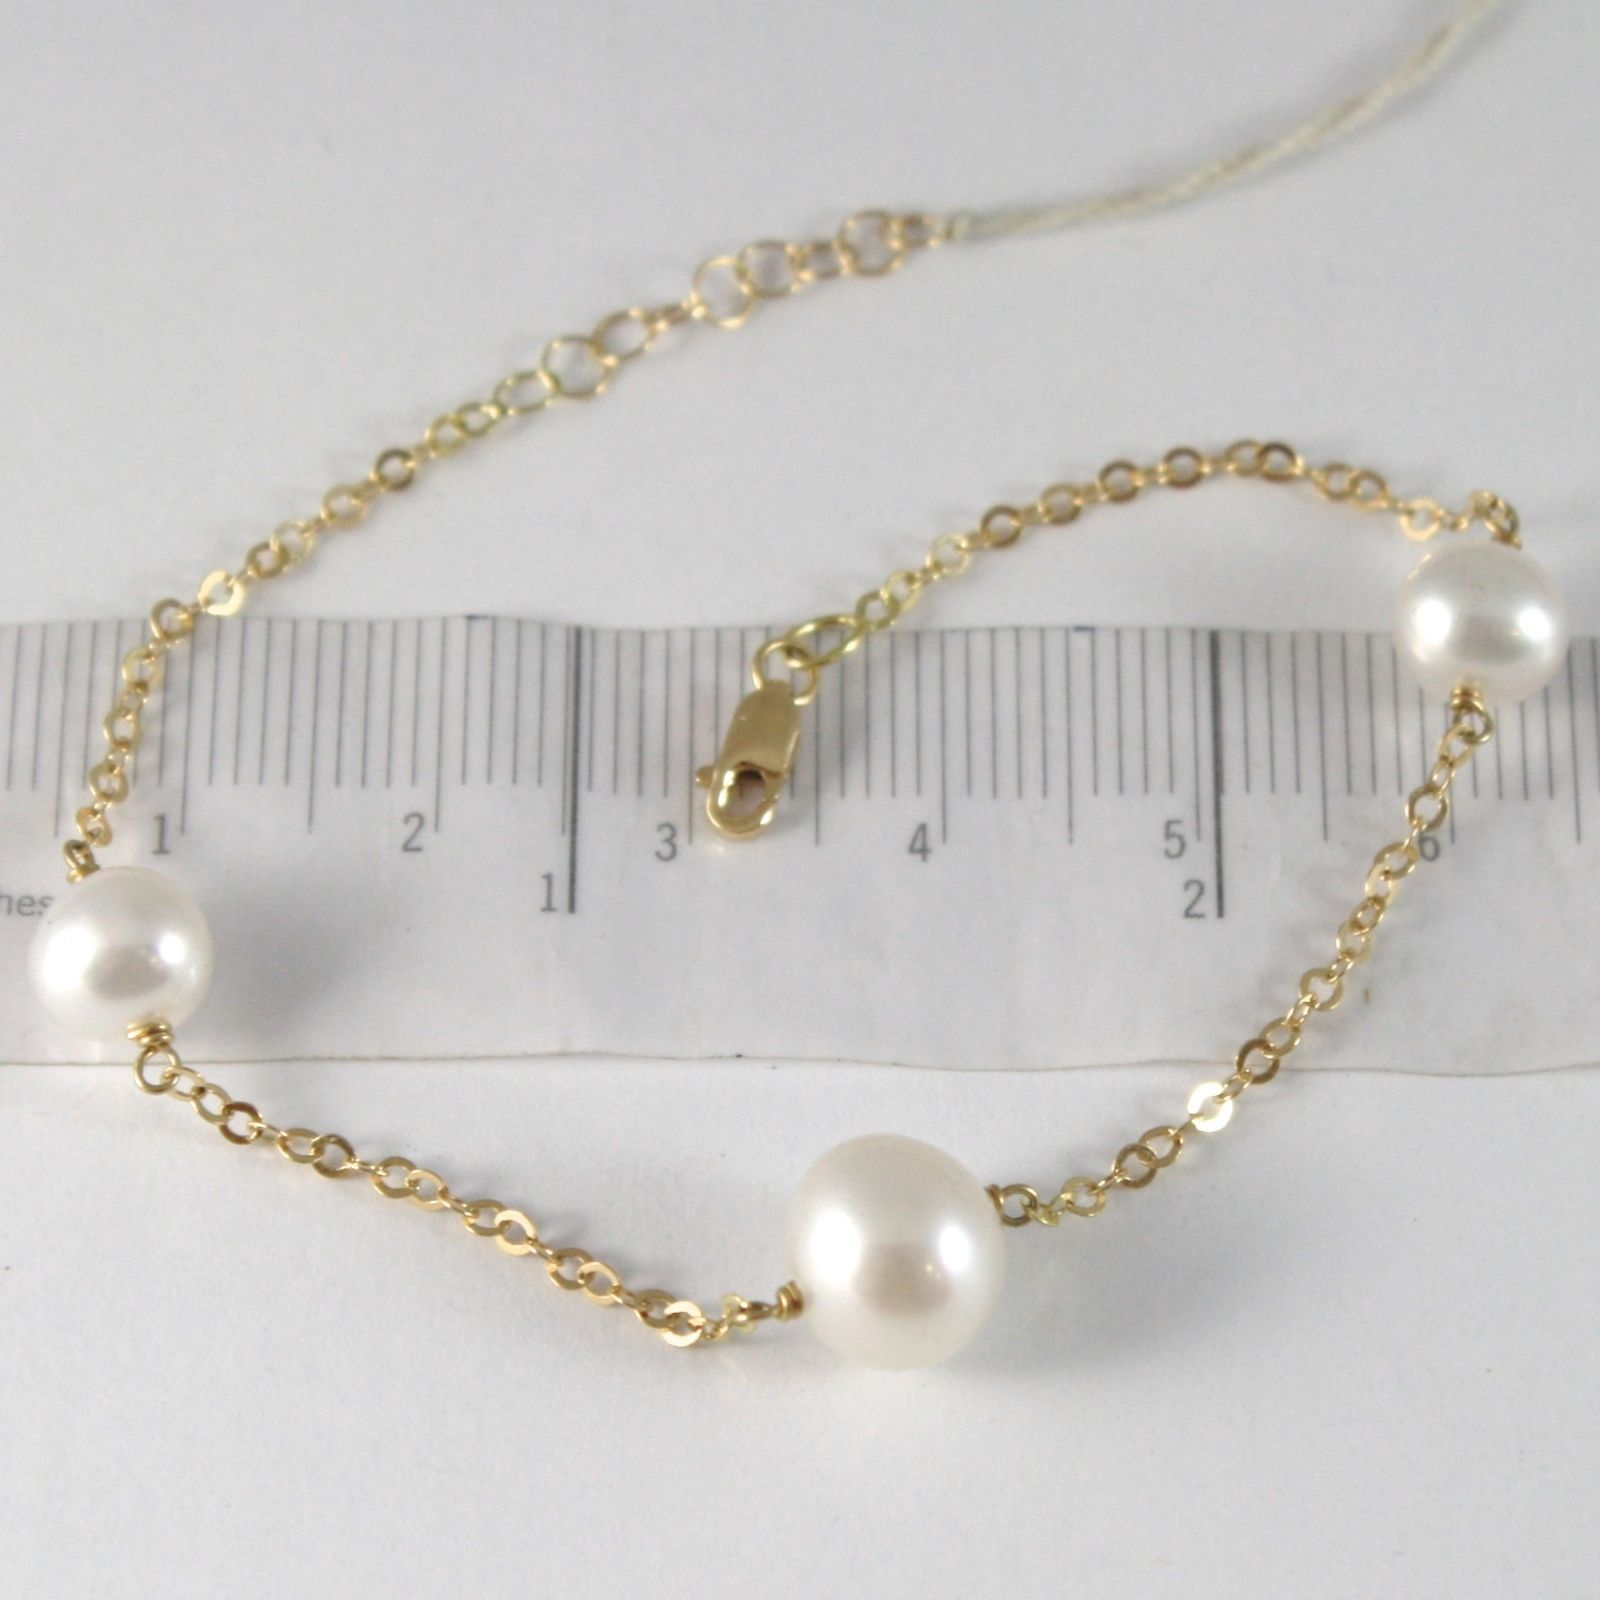 BRACELET YELLOW GOLD 750 18K, WHITE PEARLS 7-9 MM , CHAIN ROLO', 18.5 CM